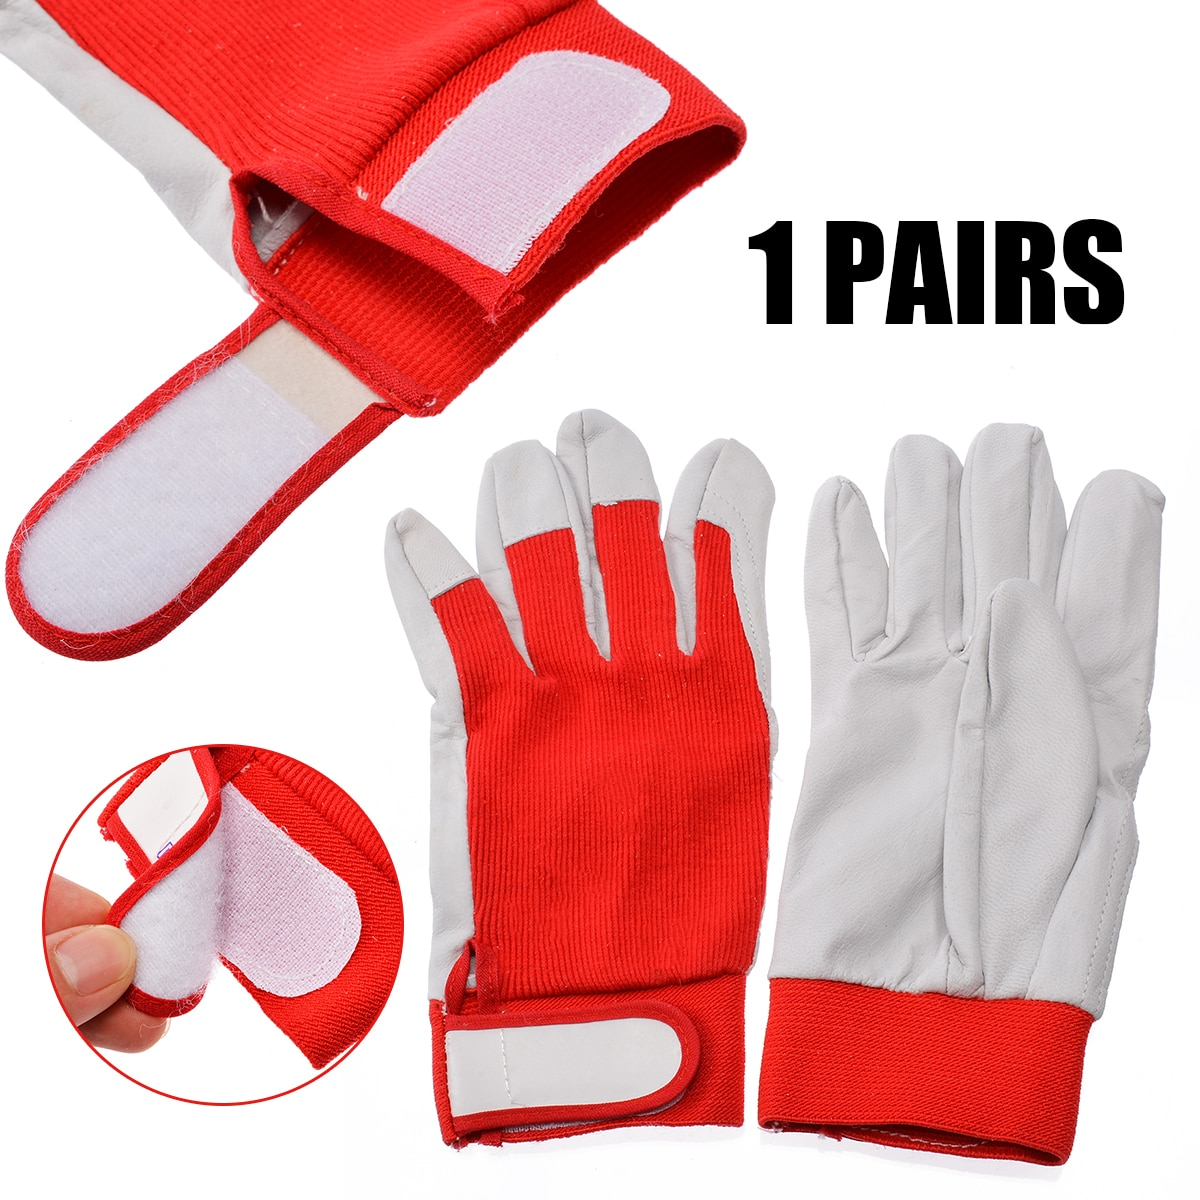 1Pair Finger Weld Gloves Welding Equipment Welding Gloves Heat Shield Cover Safety Guard Protection For Power Tools Accessories